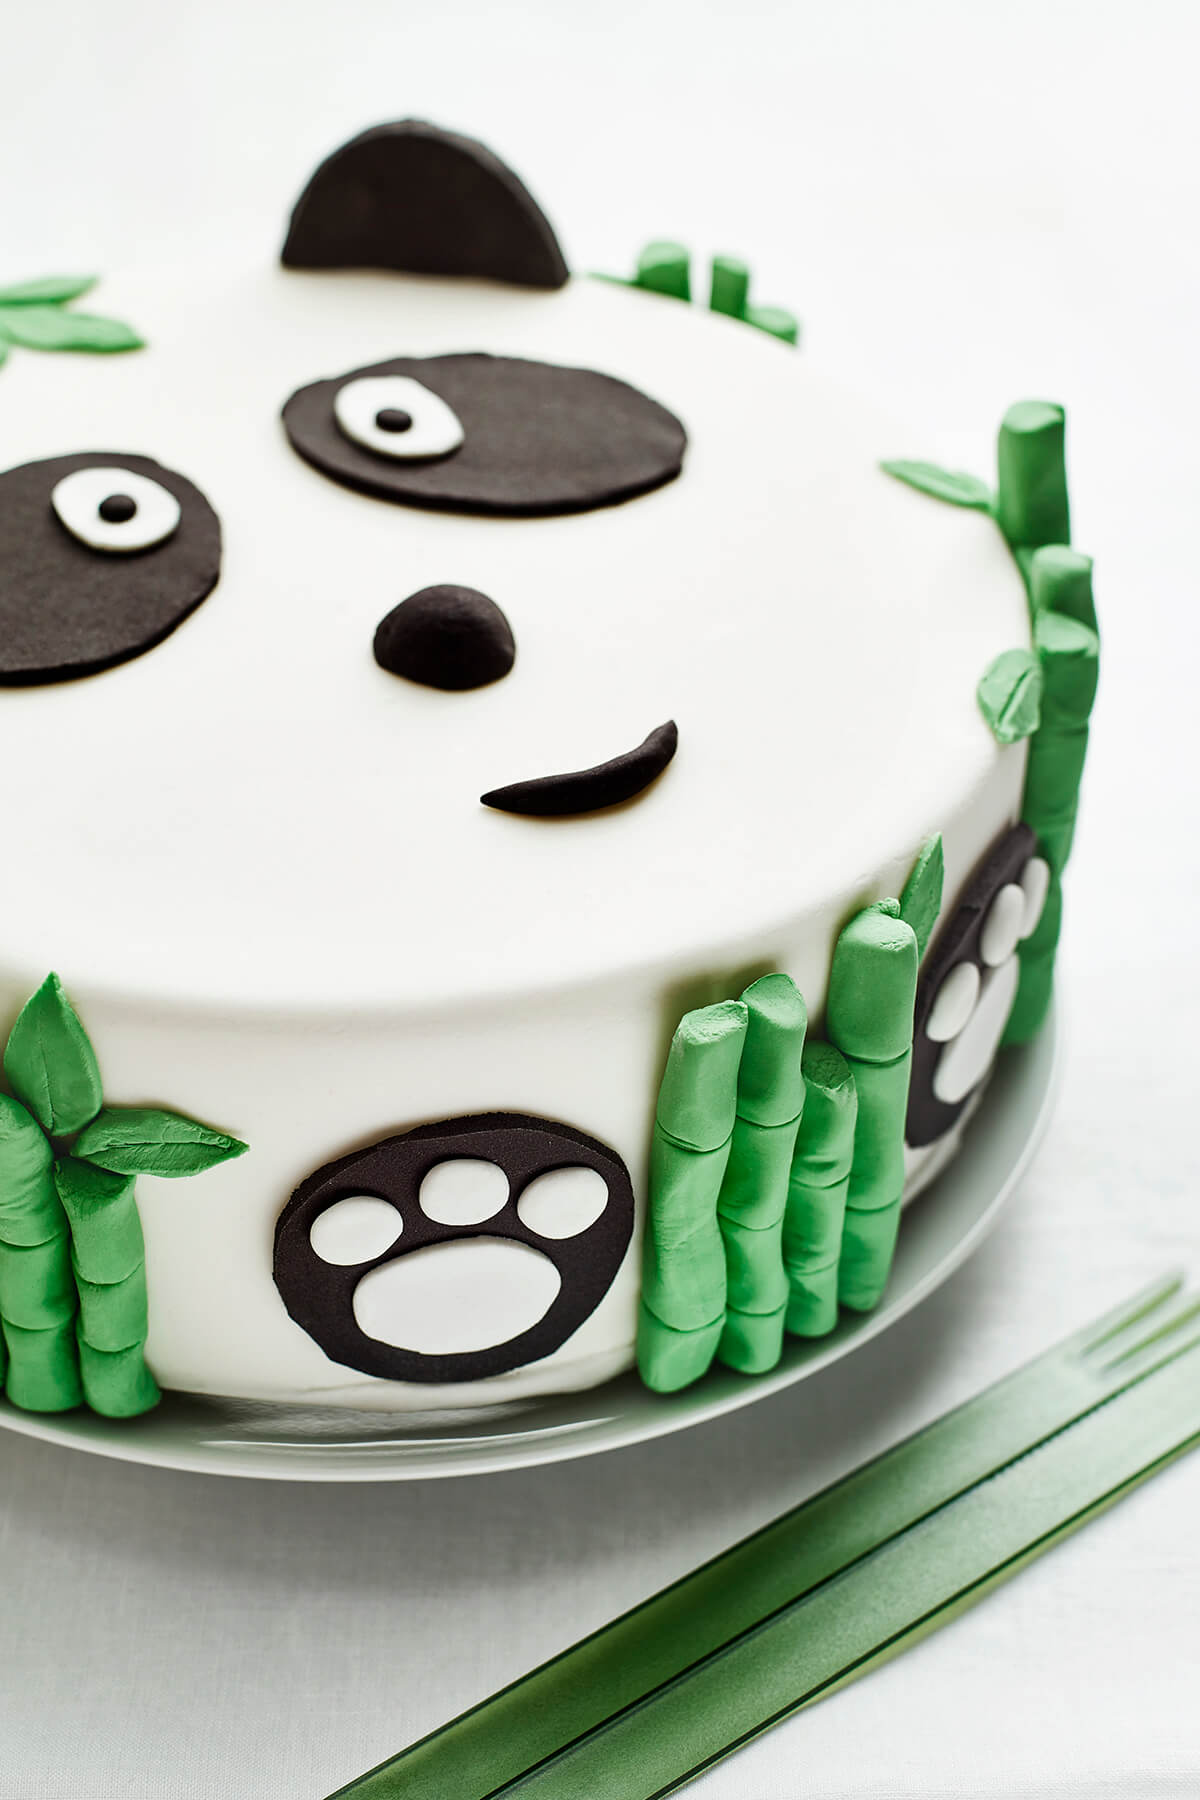 Cake Decorating Theme Kits : Panda Themed DIY Birthday Cake Decorating Kit for Kids Cakest